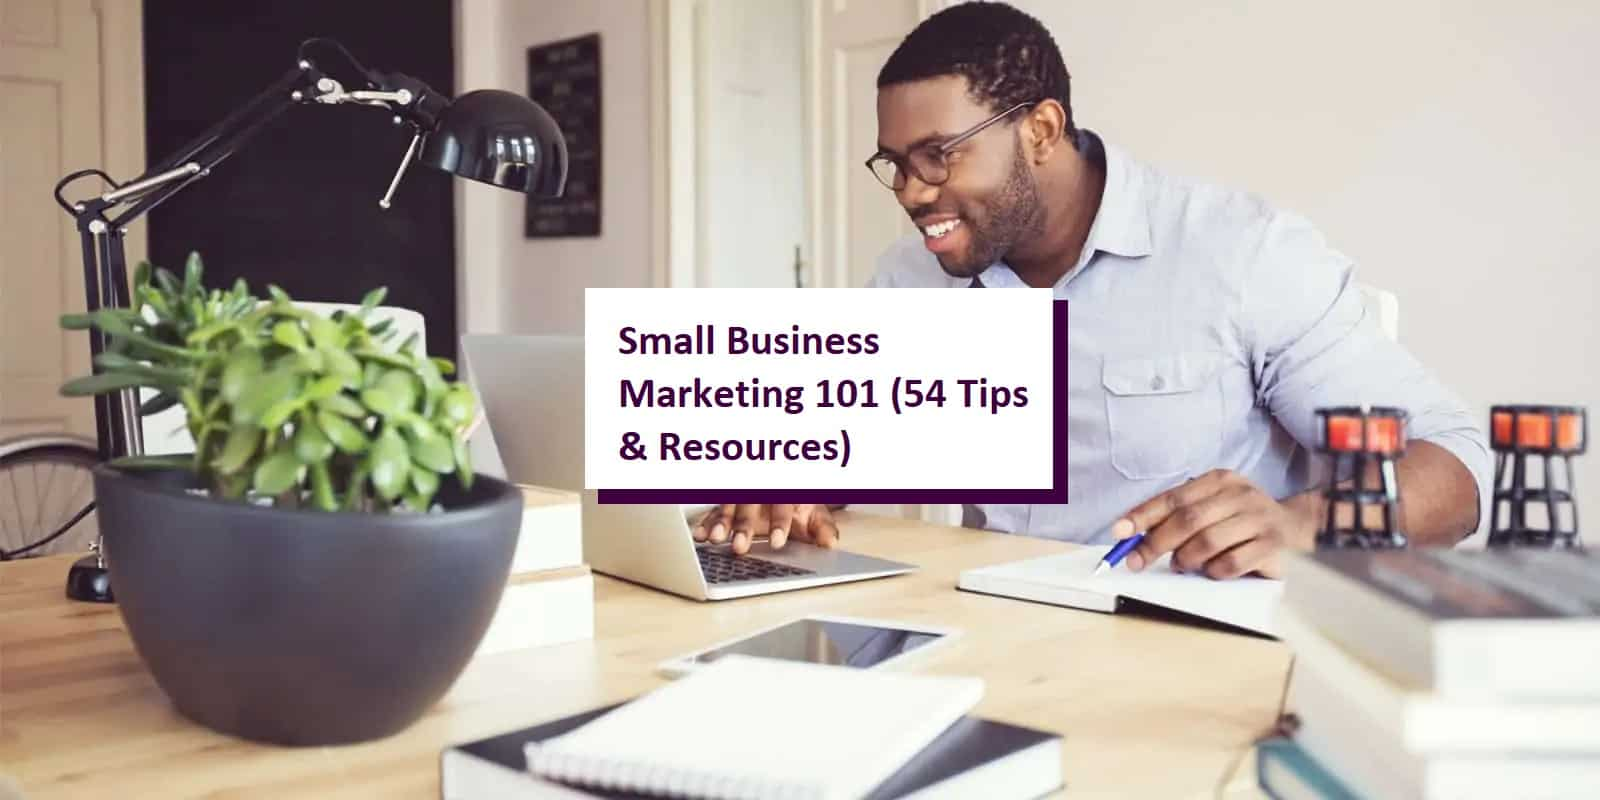 Small Business Marketing 101 (54 Tips & Resources)